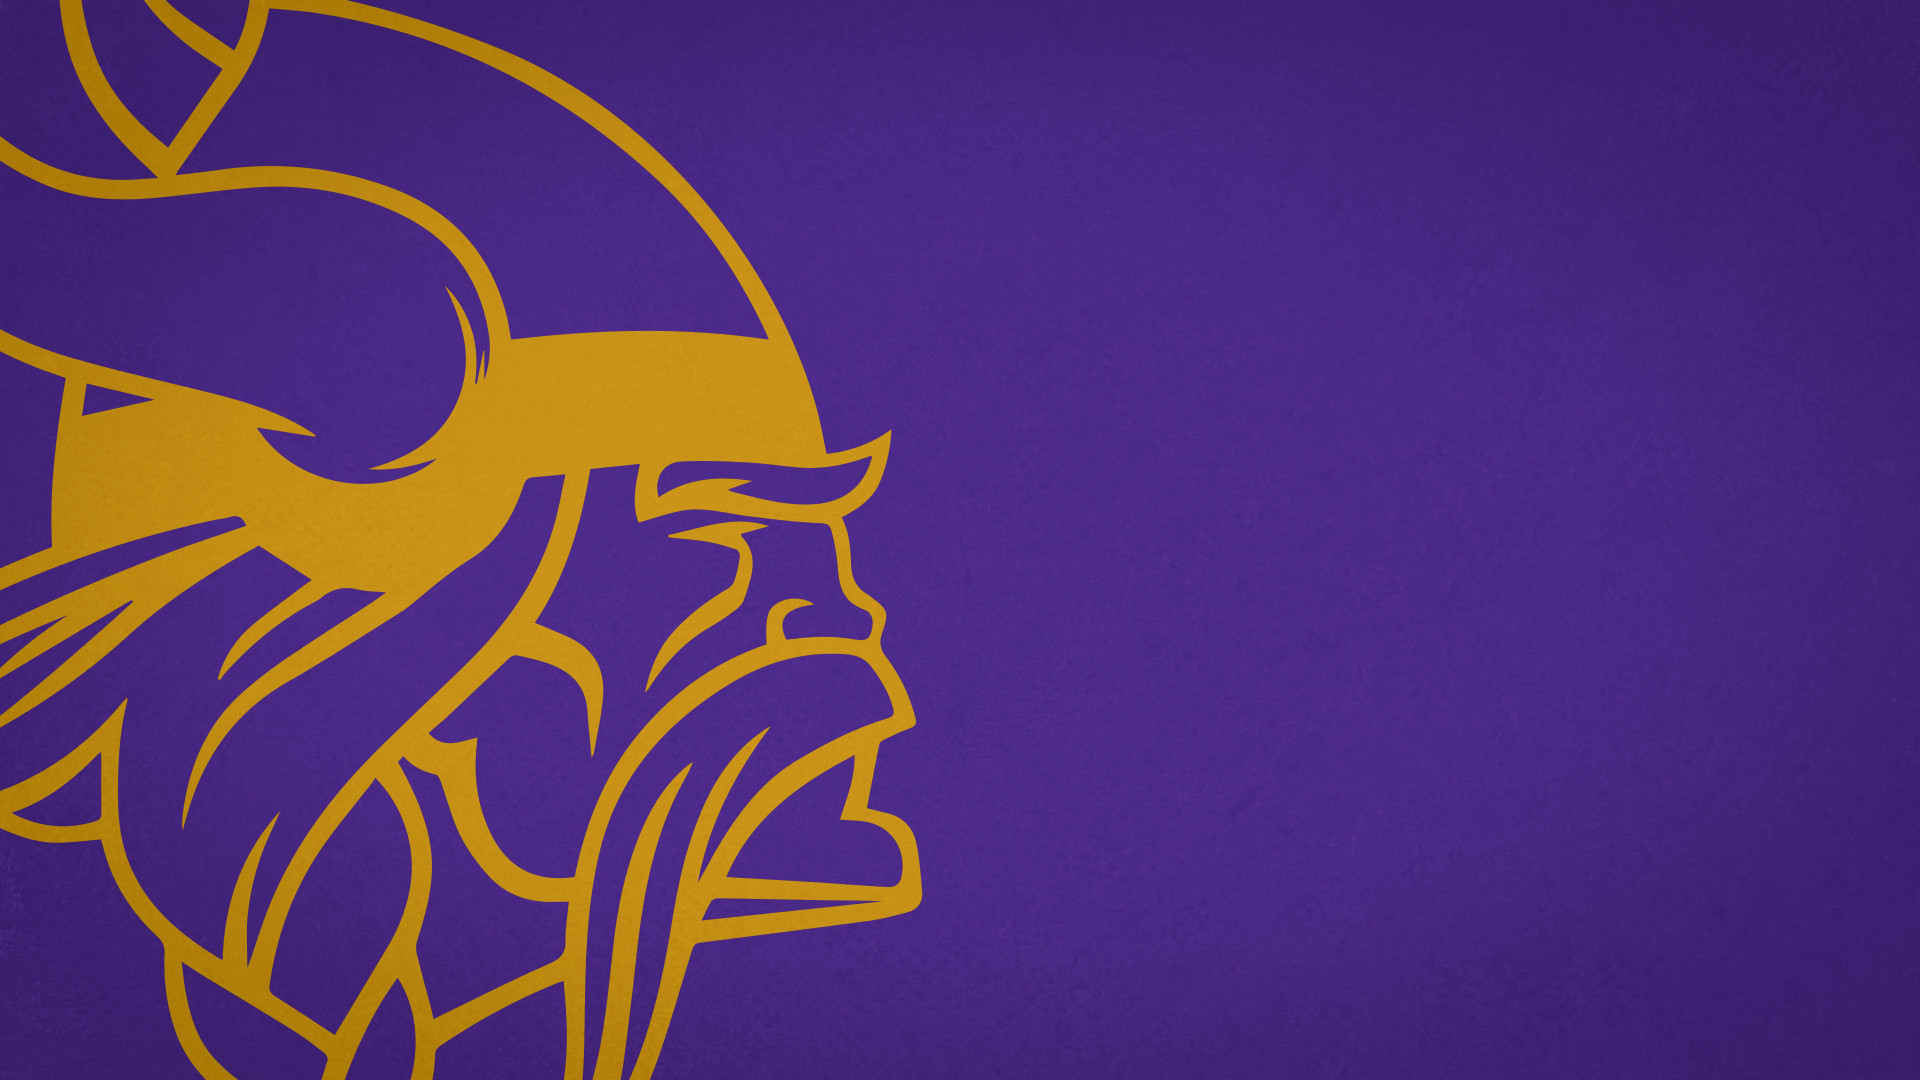 1920x1080 Minnesota Vikings 2015 Schedule Full HD Quality Wallpapers